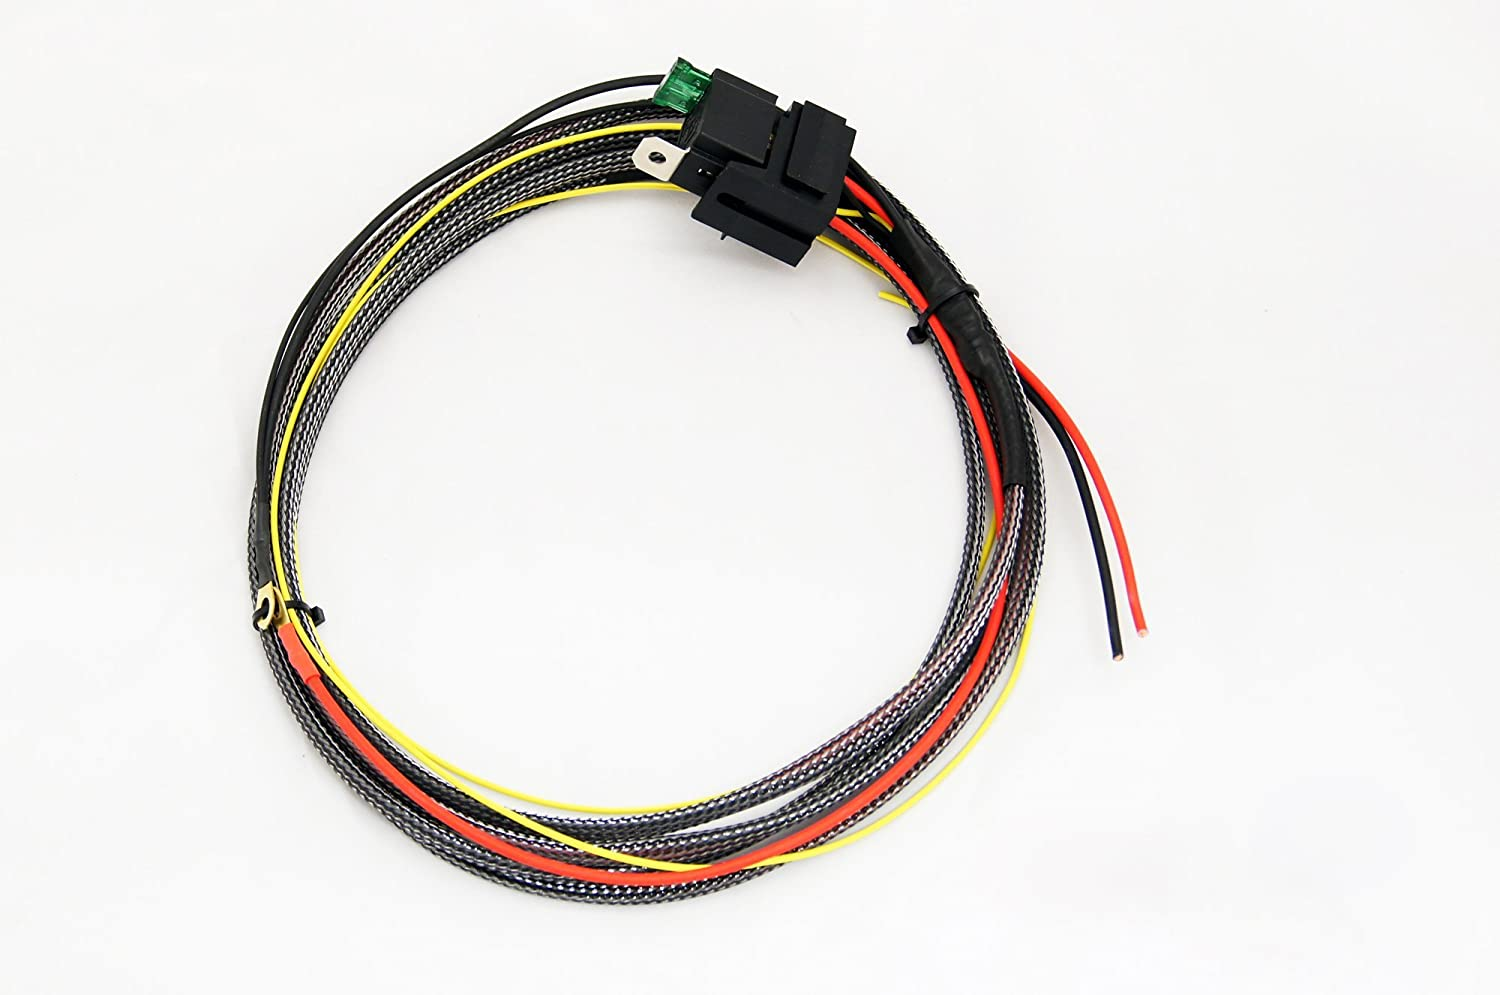 Amazon.com: UM Fuel Pump Wiring Harness Kit with Relay Kit: AutomotiveAmazon.com